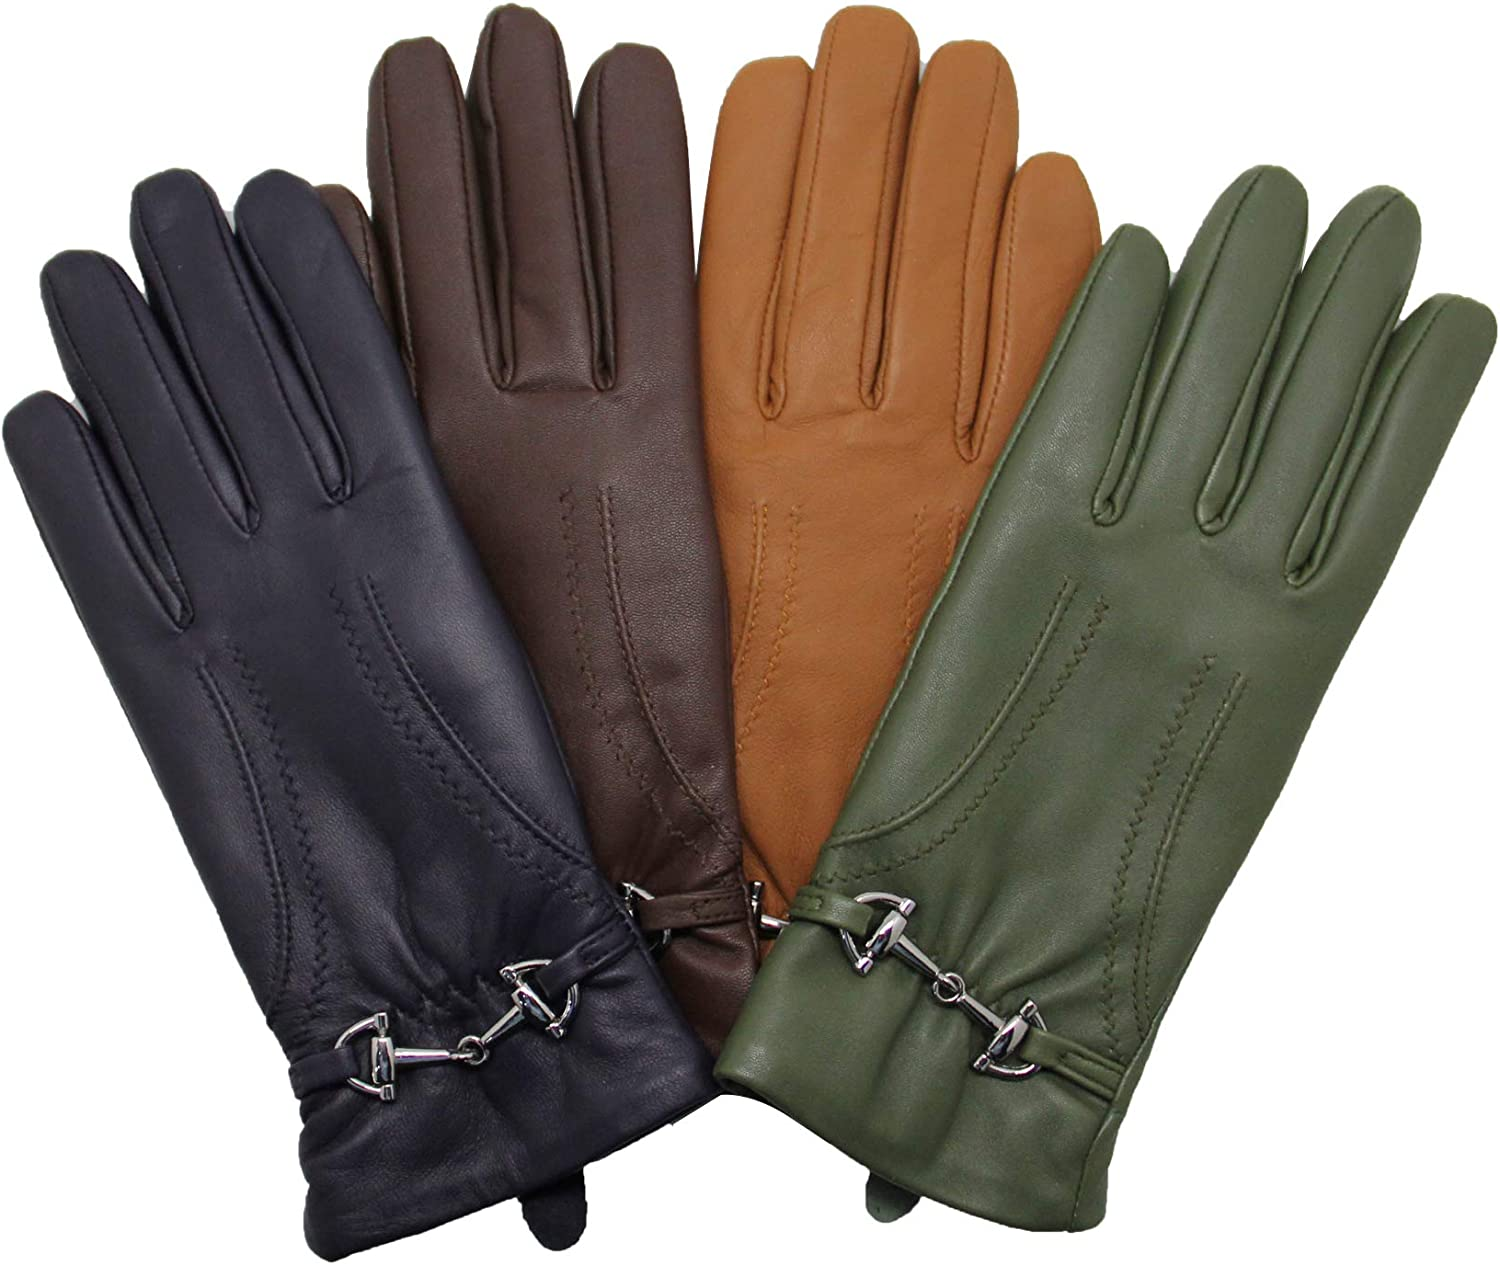 YISEVEN Soft Womens Winter Leather Warm Driving Guantes de piel de cordero 100% puro